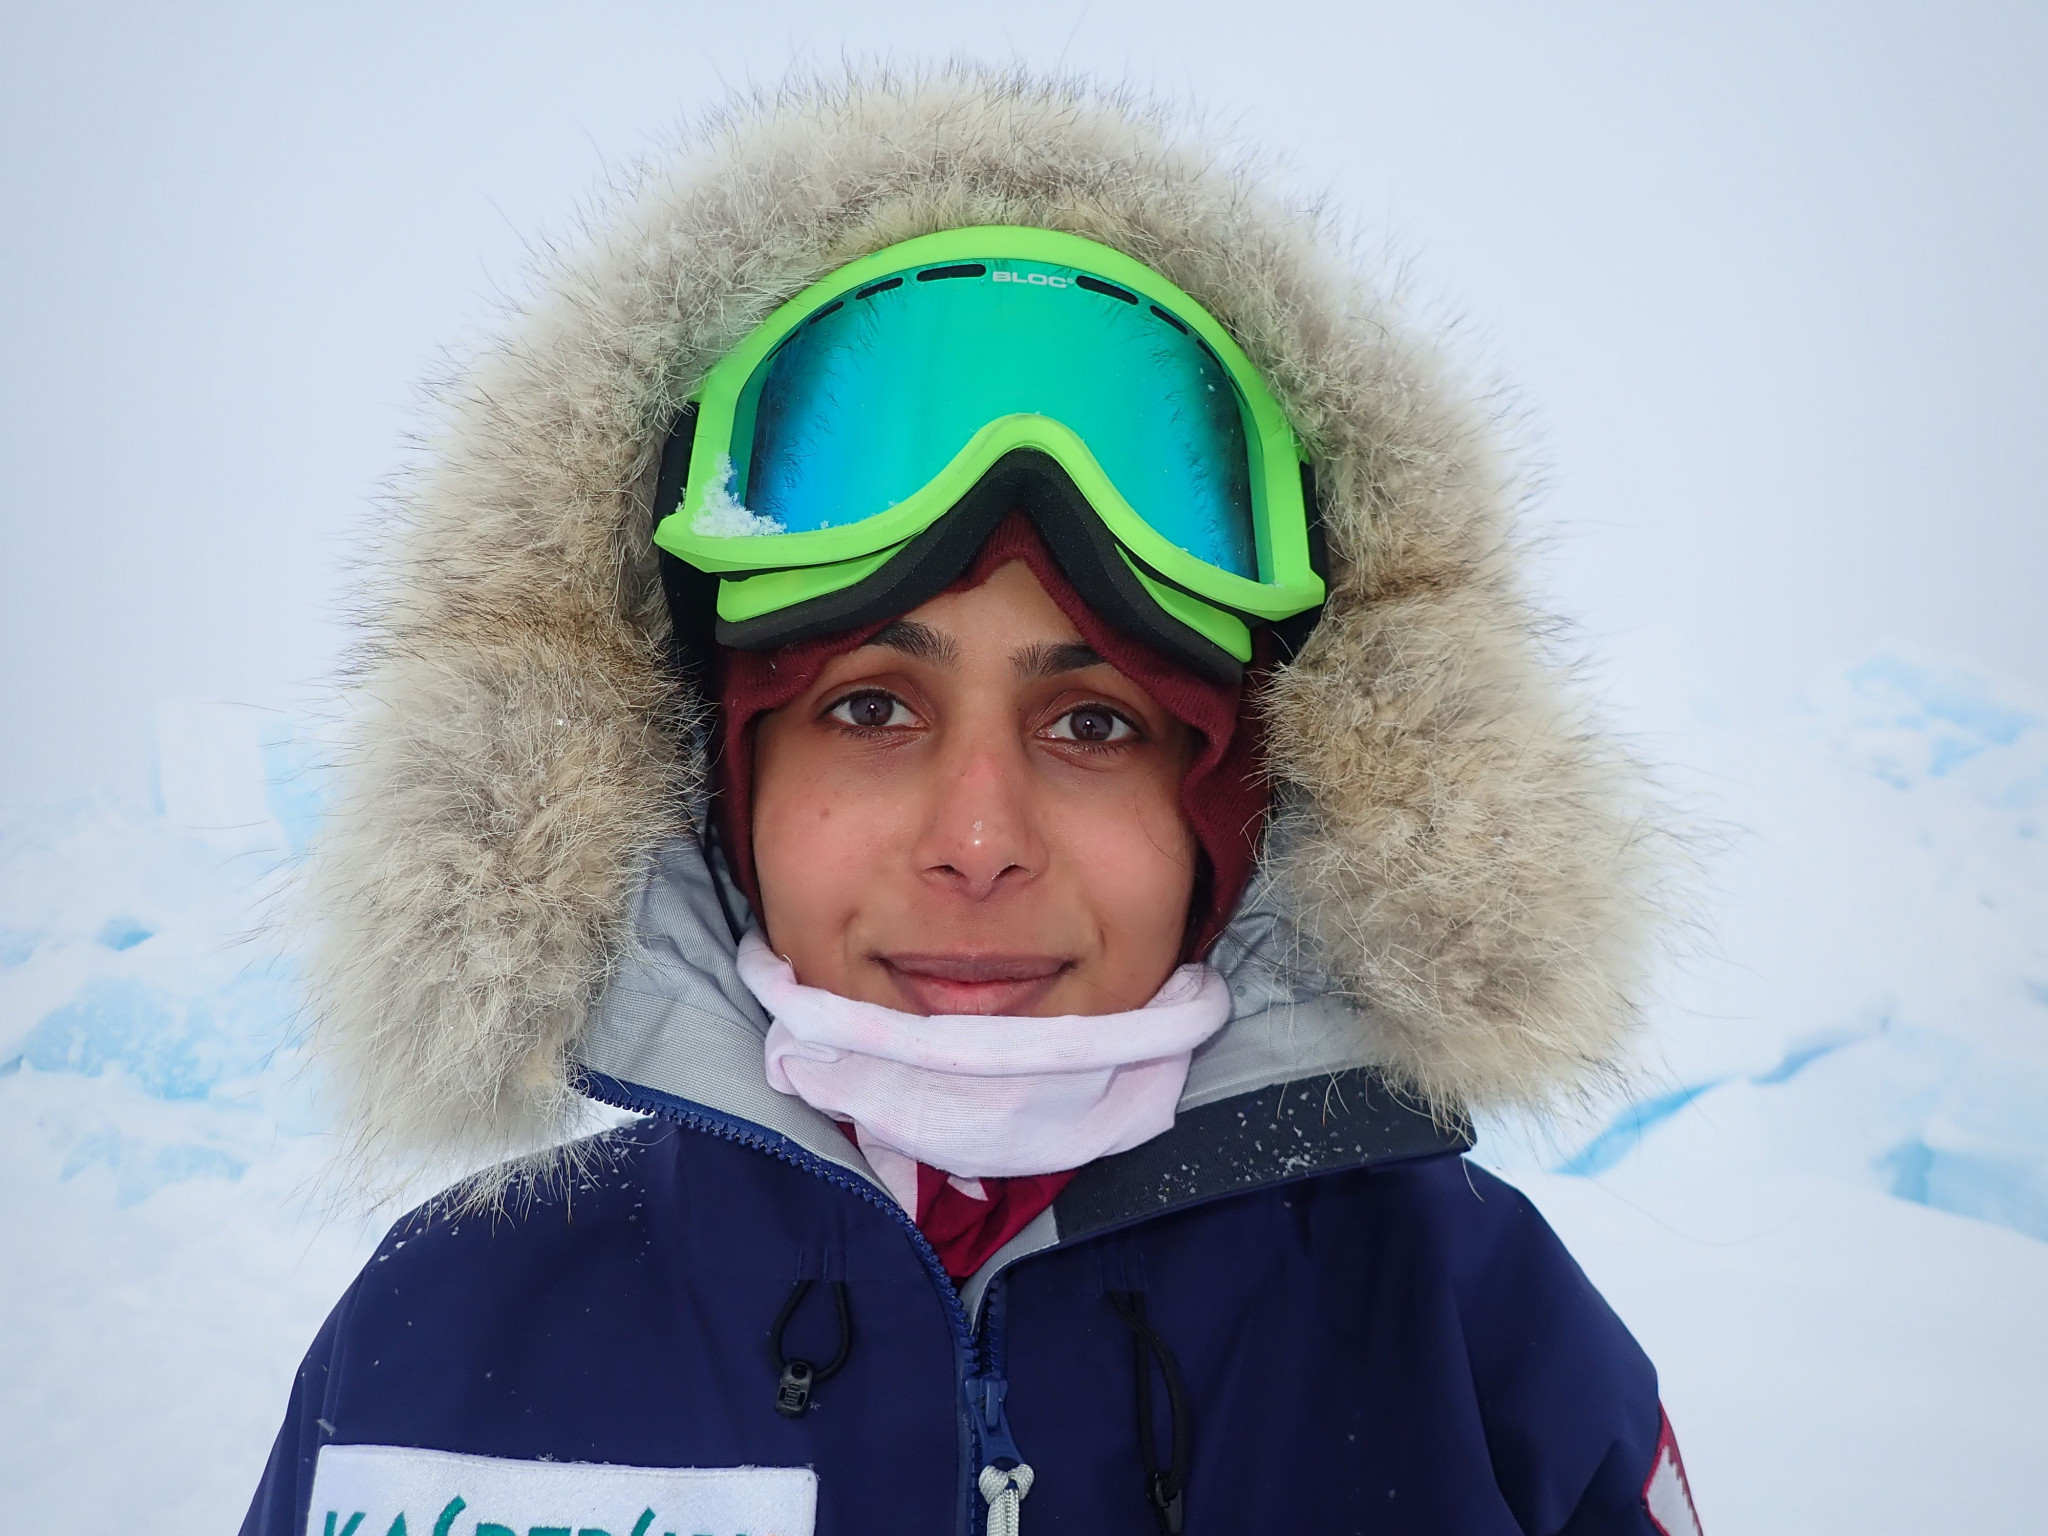 Sheikha Asma Al Thani became the first Qatari to ski to the North Pole ©QOC